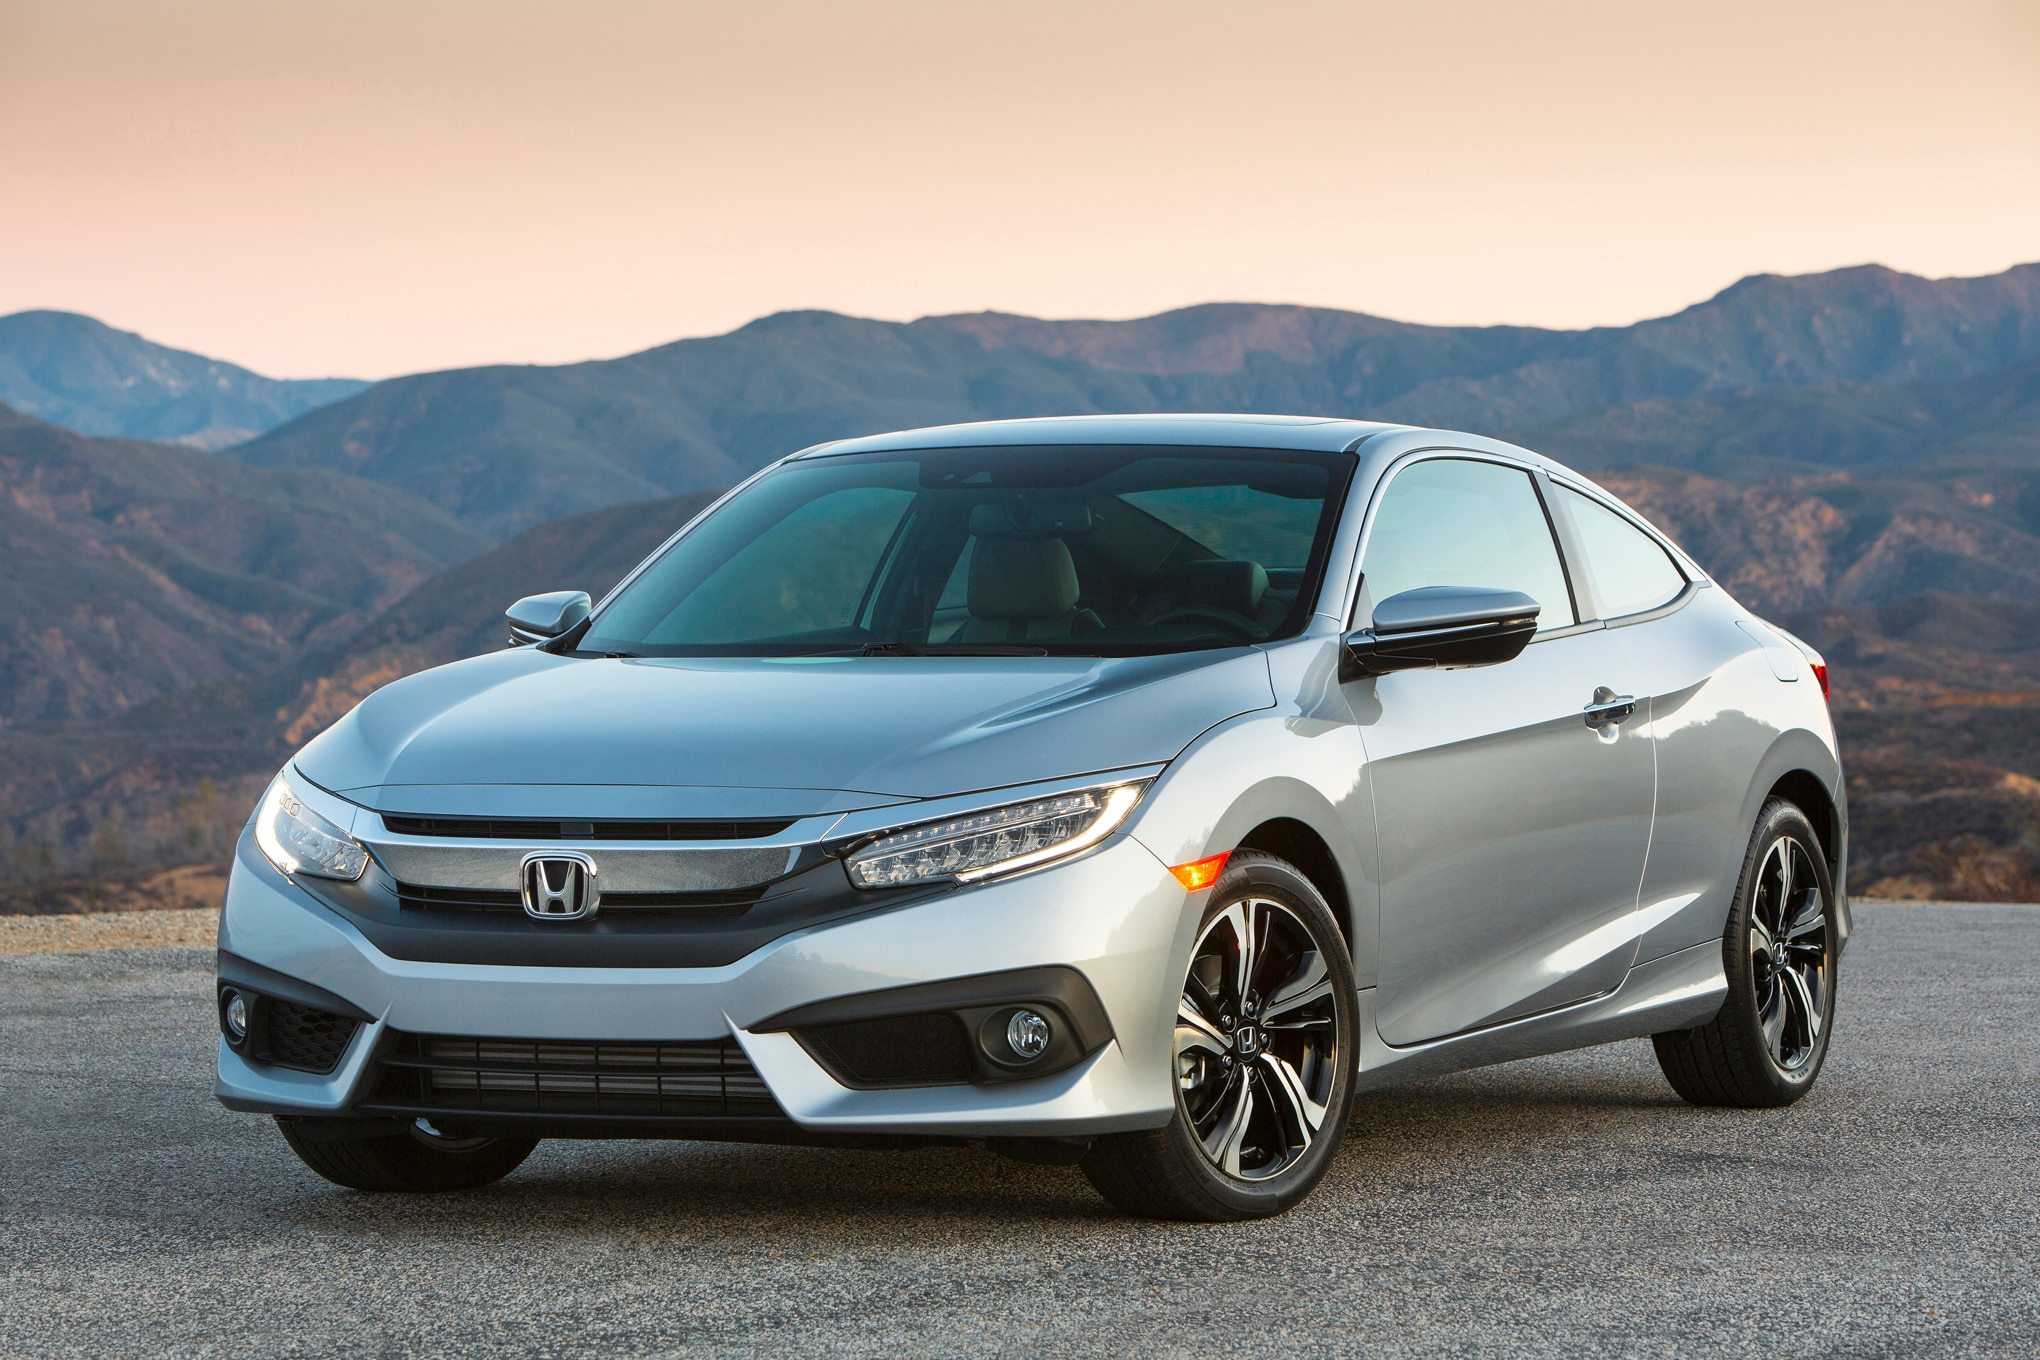 honda civic 2016 coupe. show more honda civic 2016 coupe